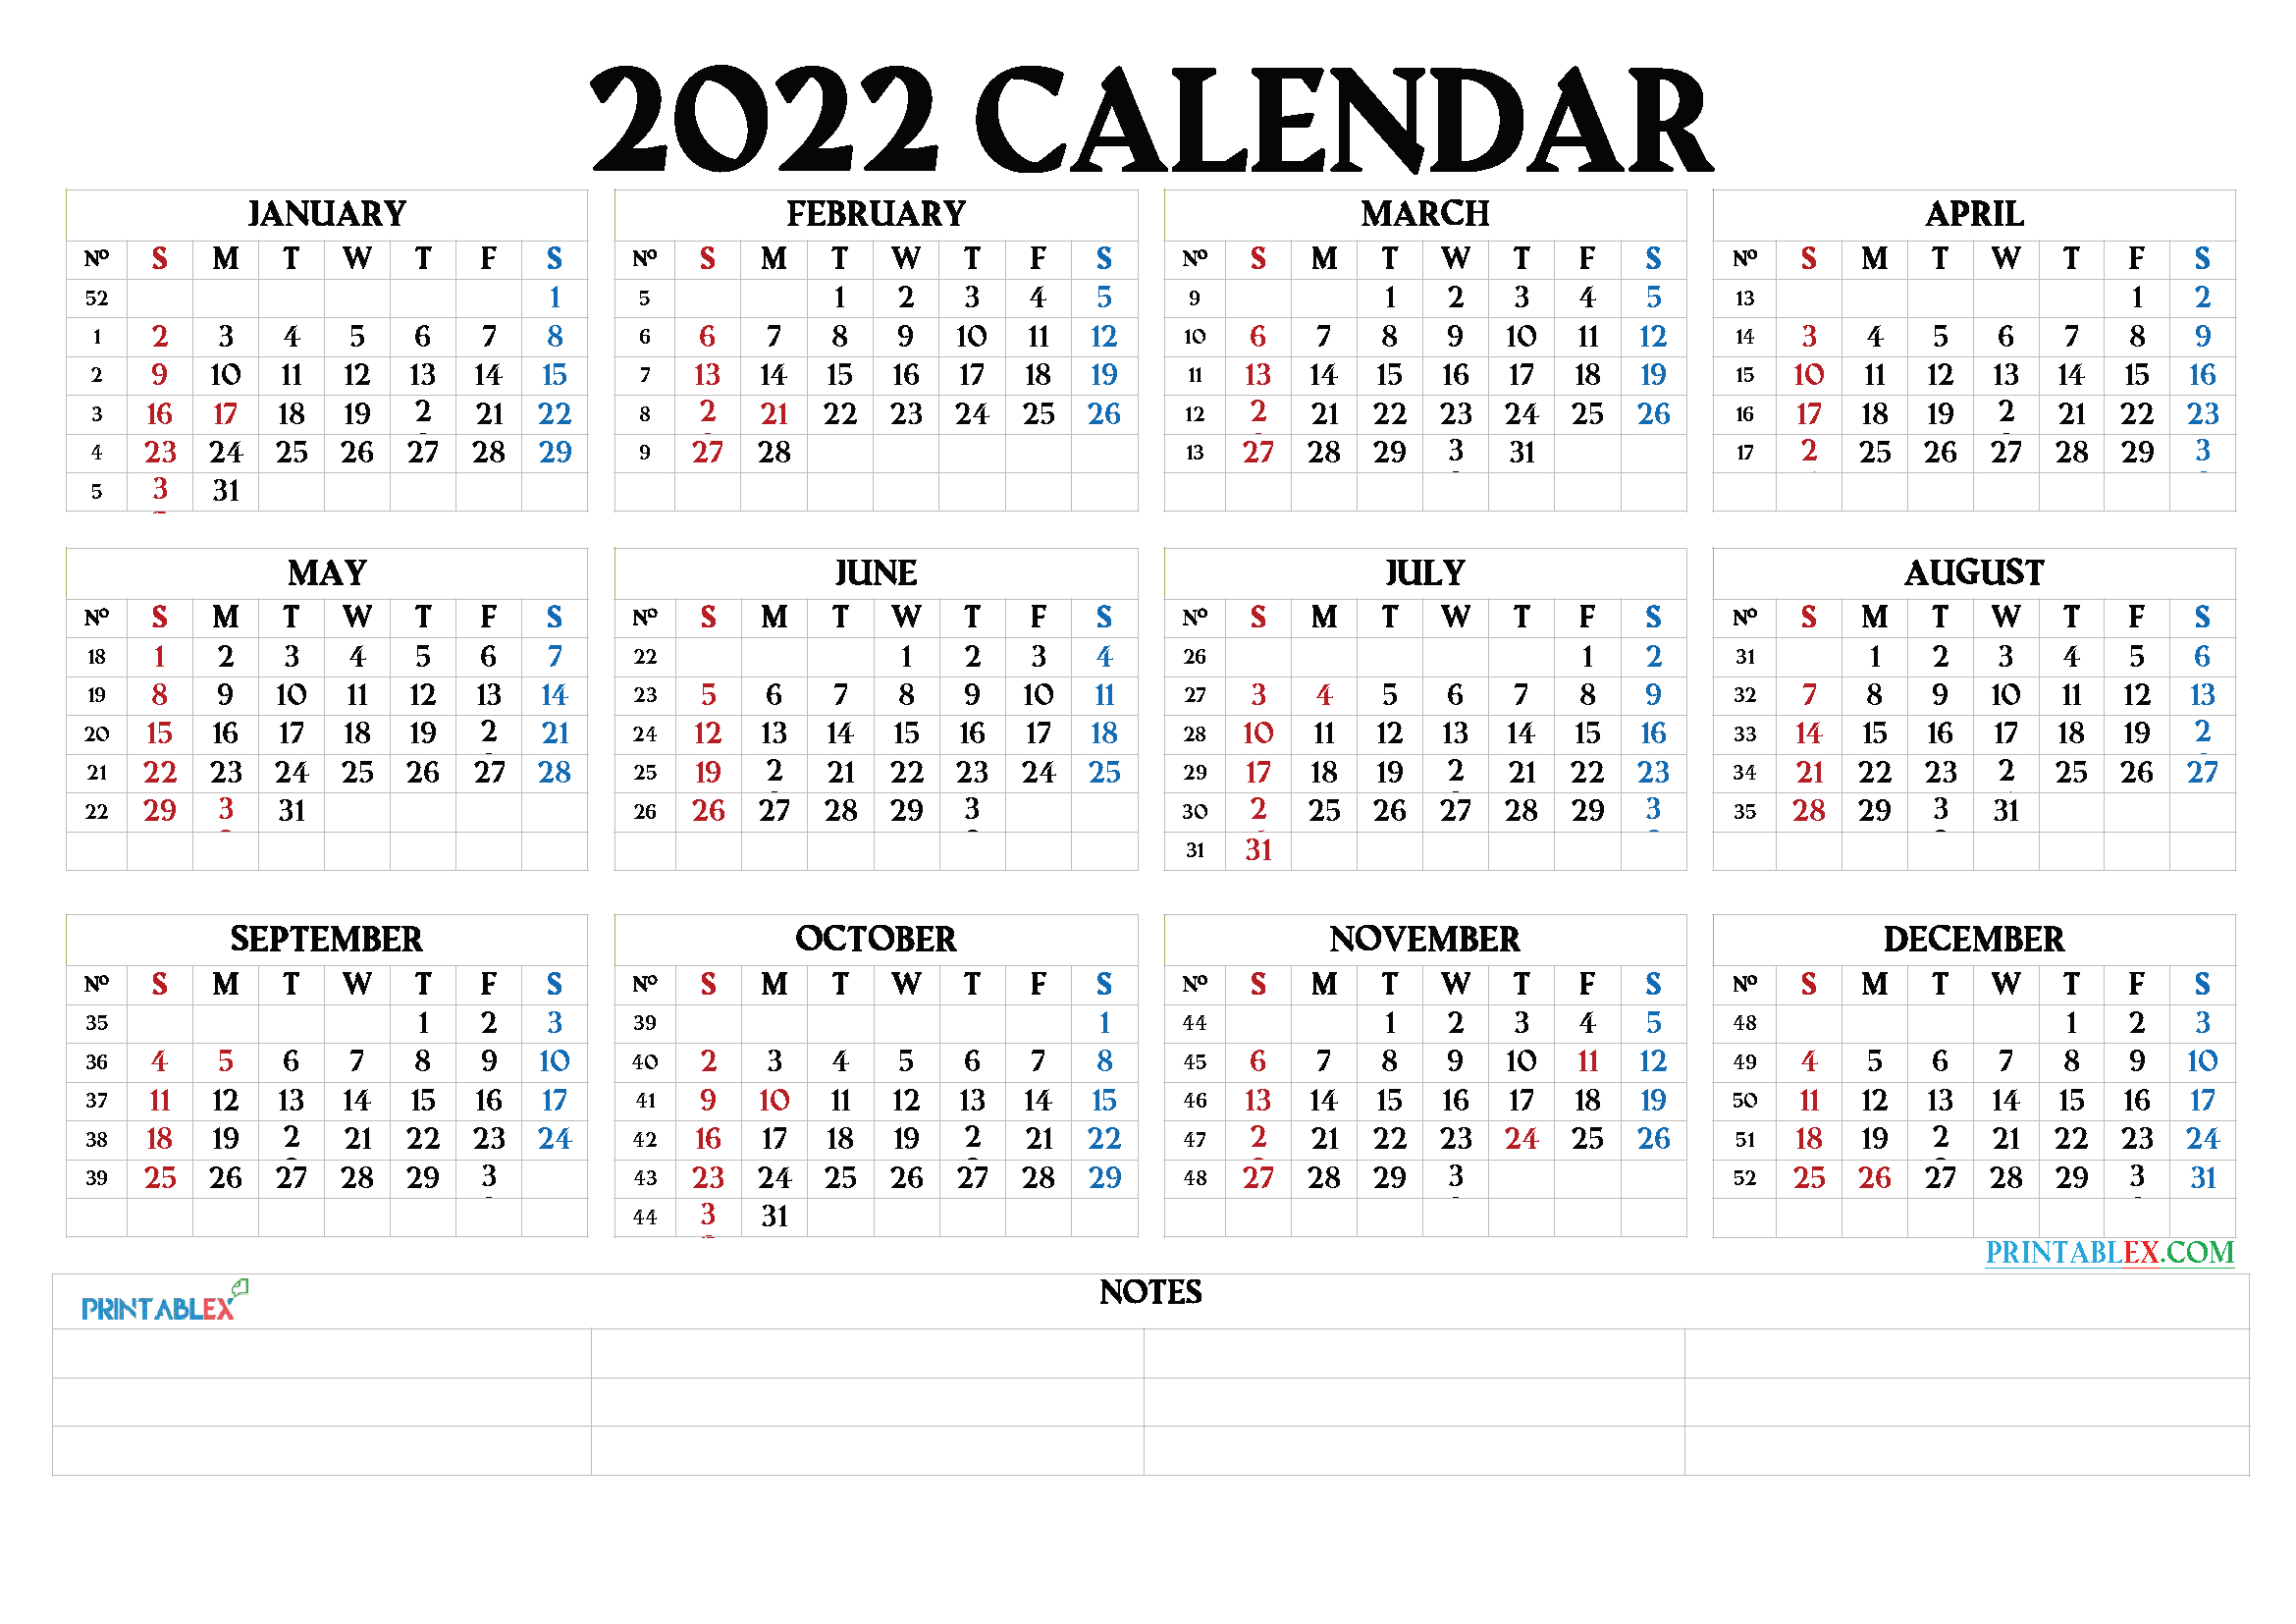 Free Calendar Printable 2022 | Free Letter Templates pertaining to Walmart Fiscal Calendar For 2022